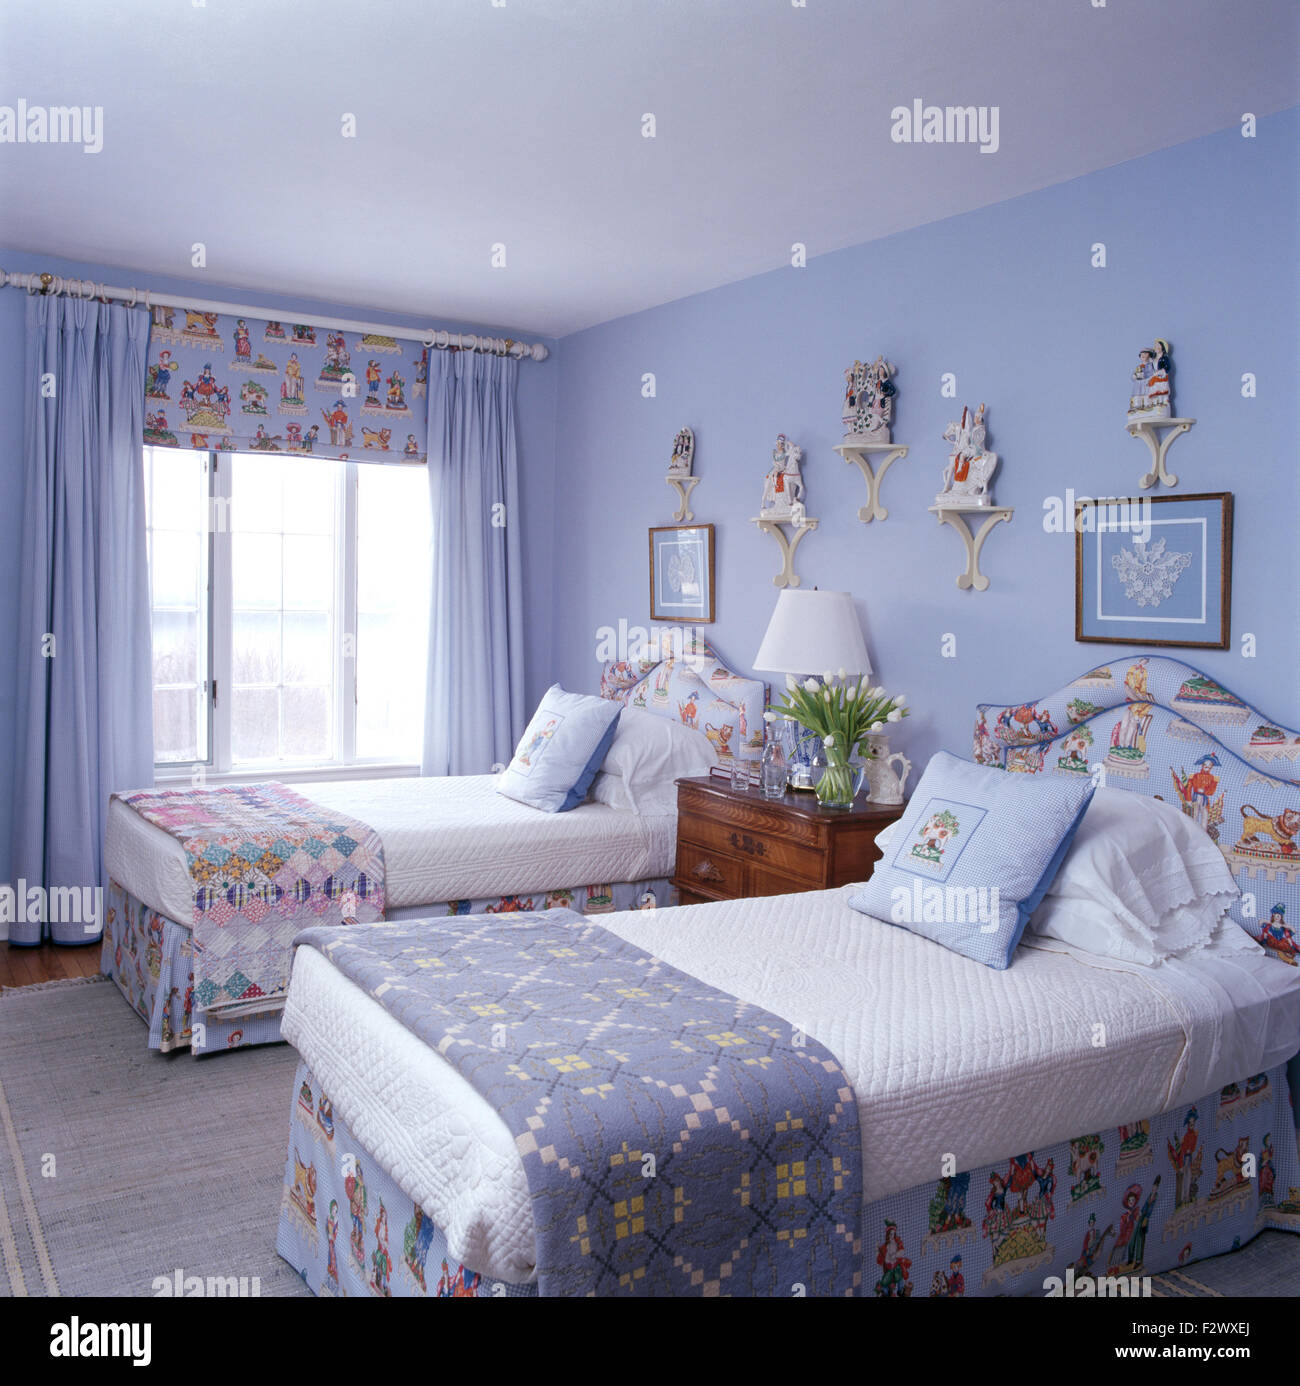 Welsh Blanket And A Patchwork Quilt On Single Beds In Pale Blue Bedroom  With Blue Drapes And Patterned Blind